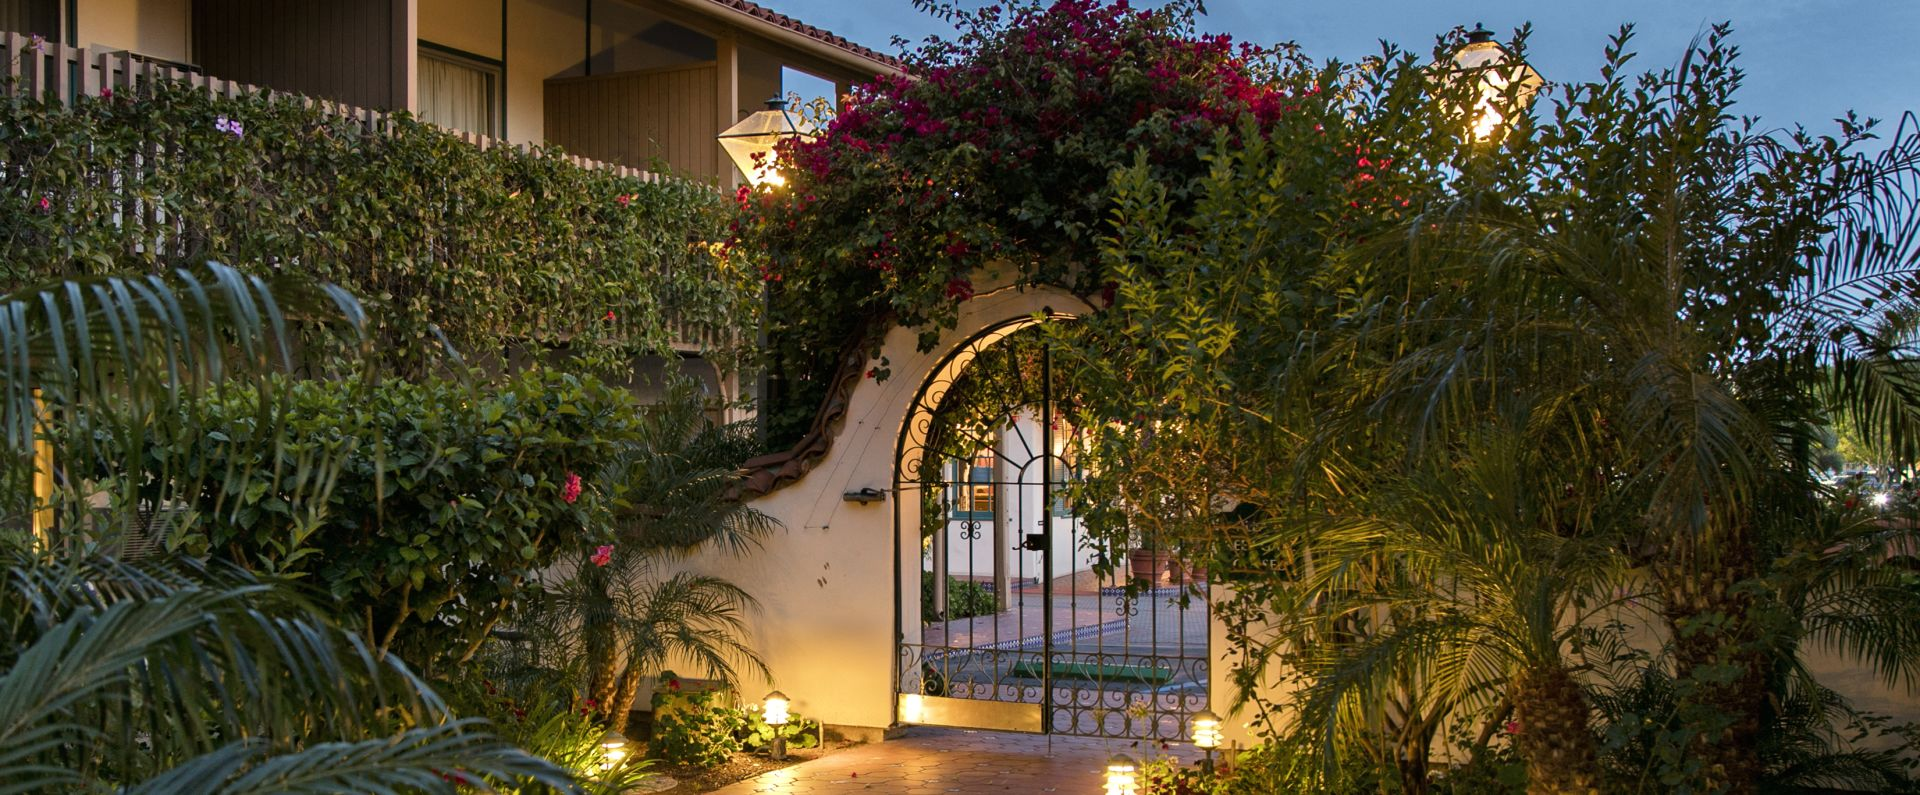 Santa Barbara Hotel with Pool | BW PLUS Pepper Tree Inn